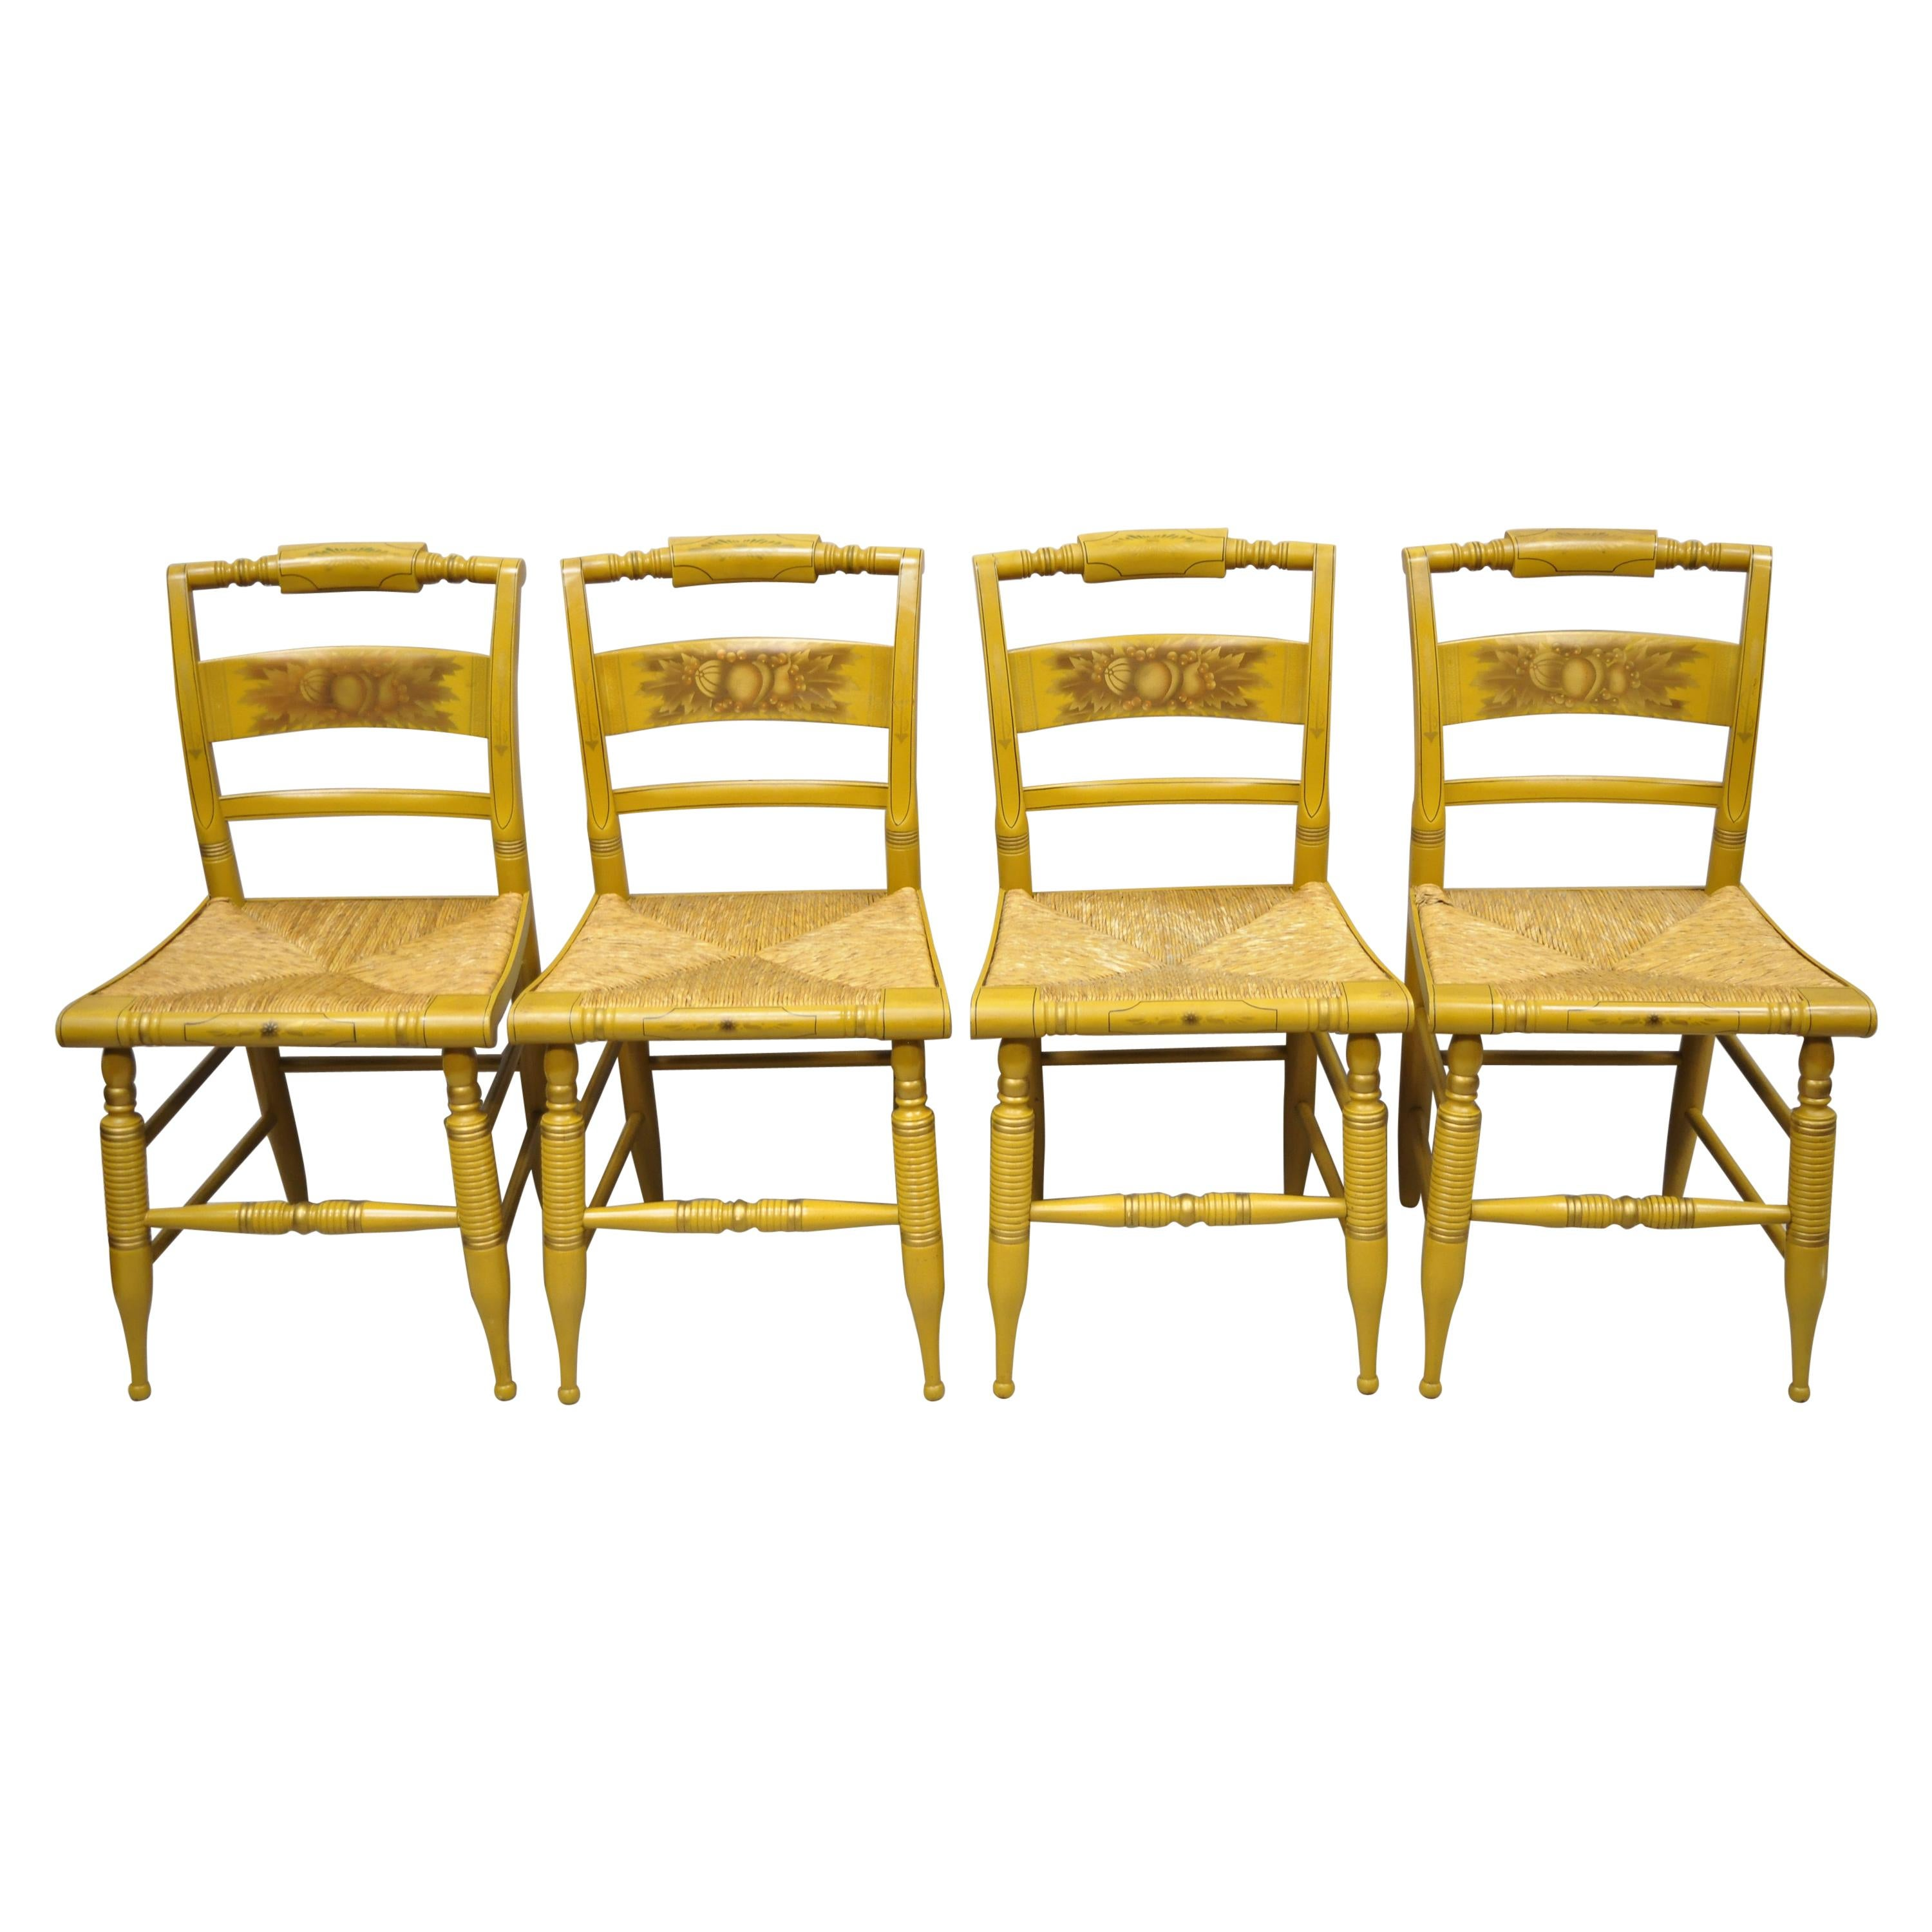 L. Hitchcock Yellow Stenciled Rush Seat Dining Side Chairs, Set of 4